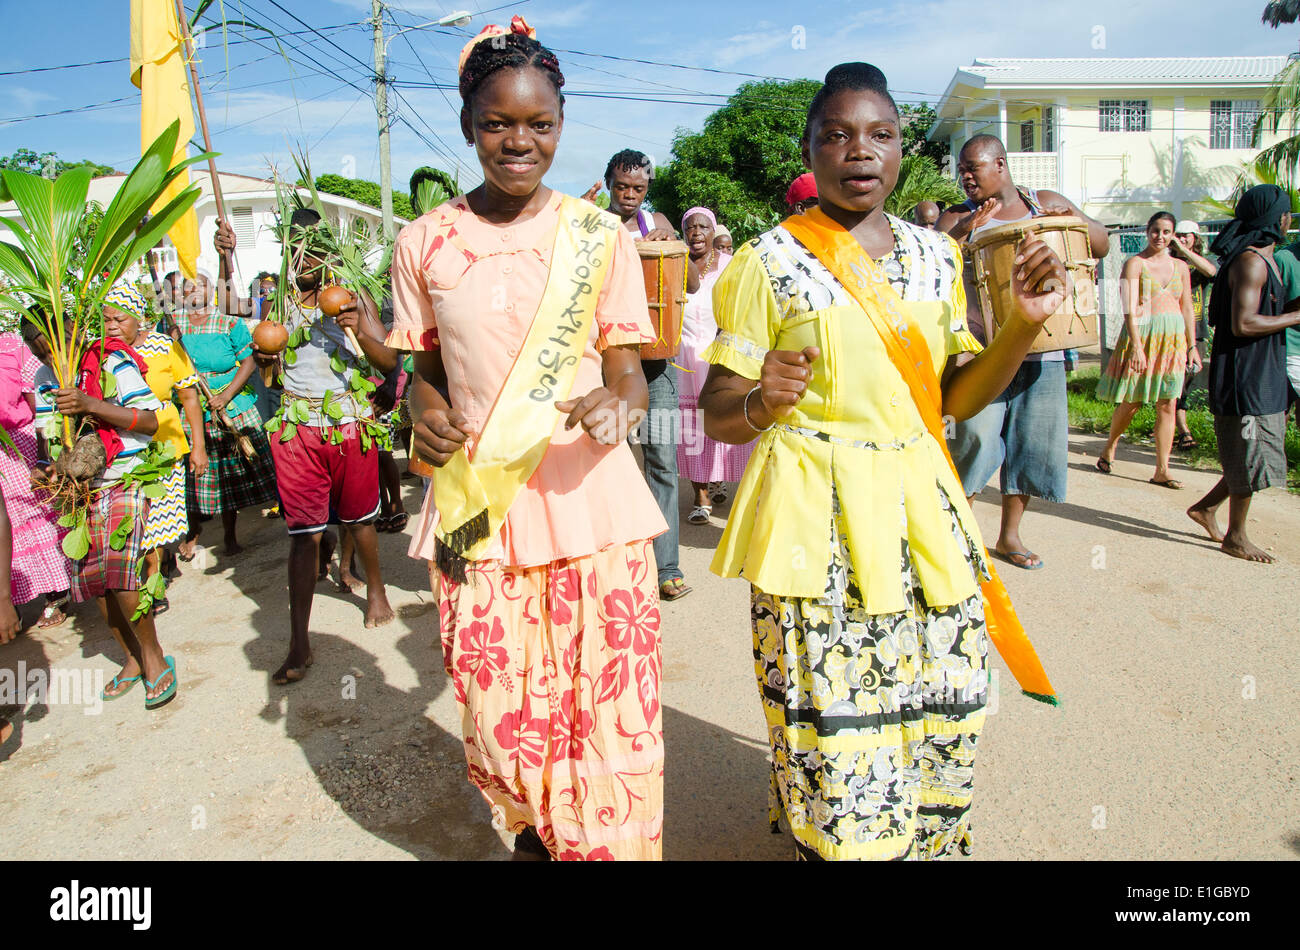 Hopkins Village, Belize, - November 19, 2013: Miss Hopkins 2013 heads up the parade as a procssession of singers, - Stock Image